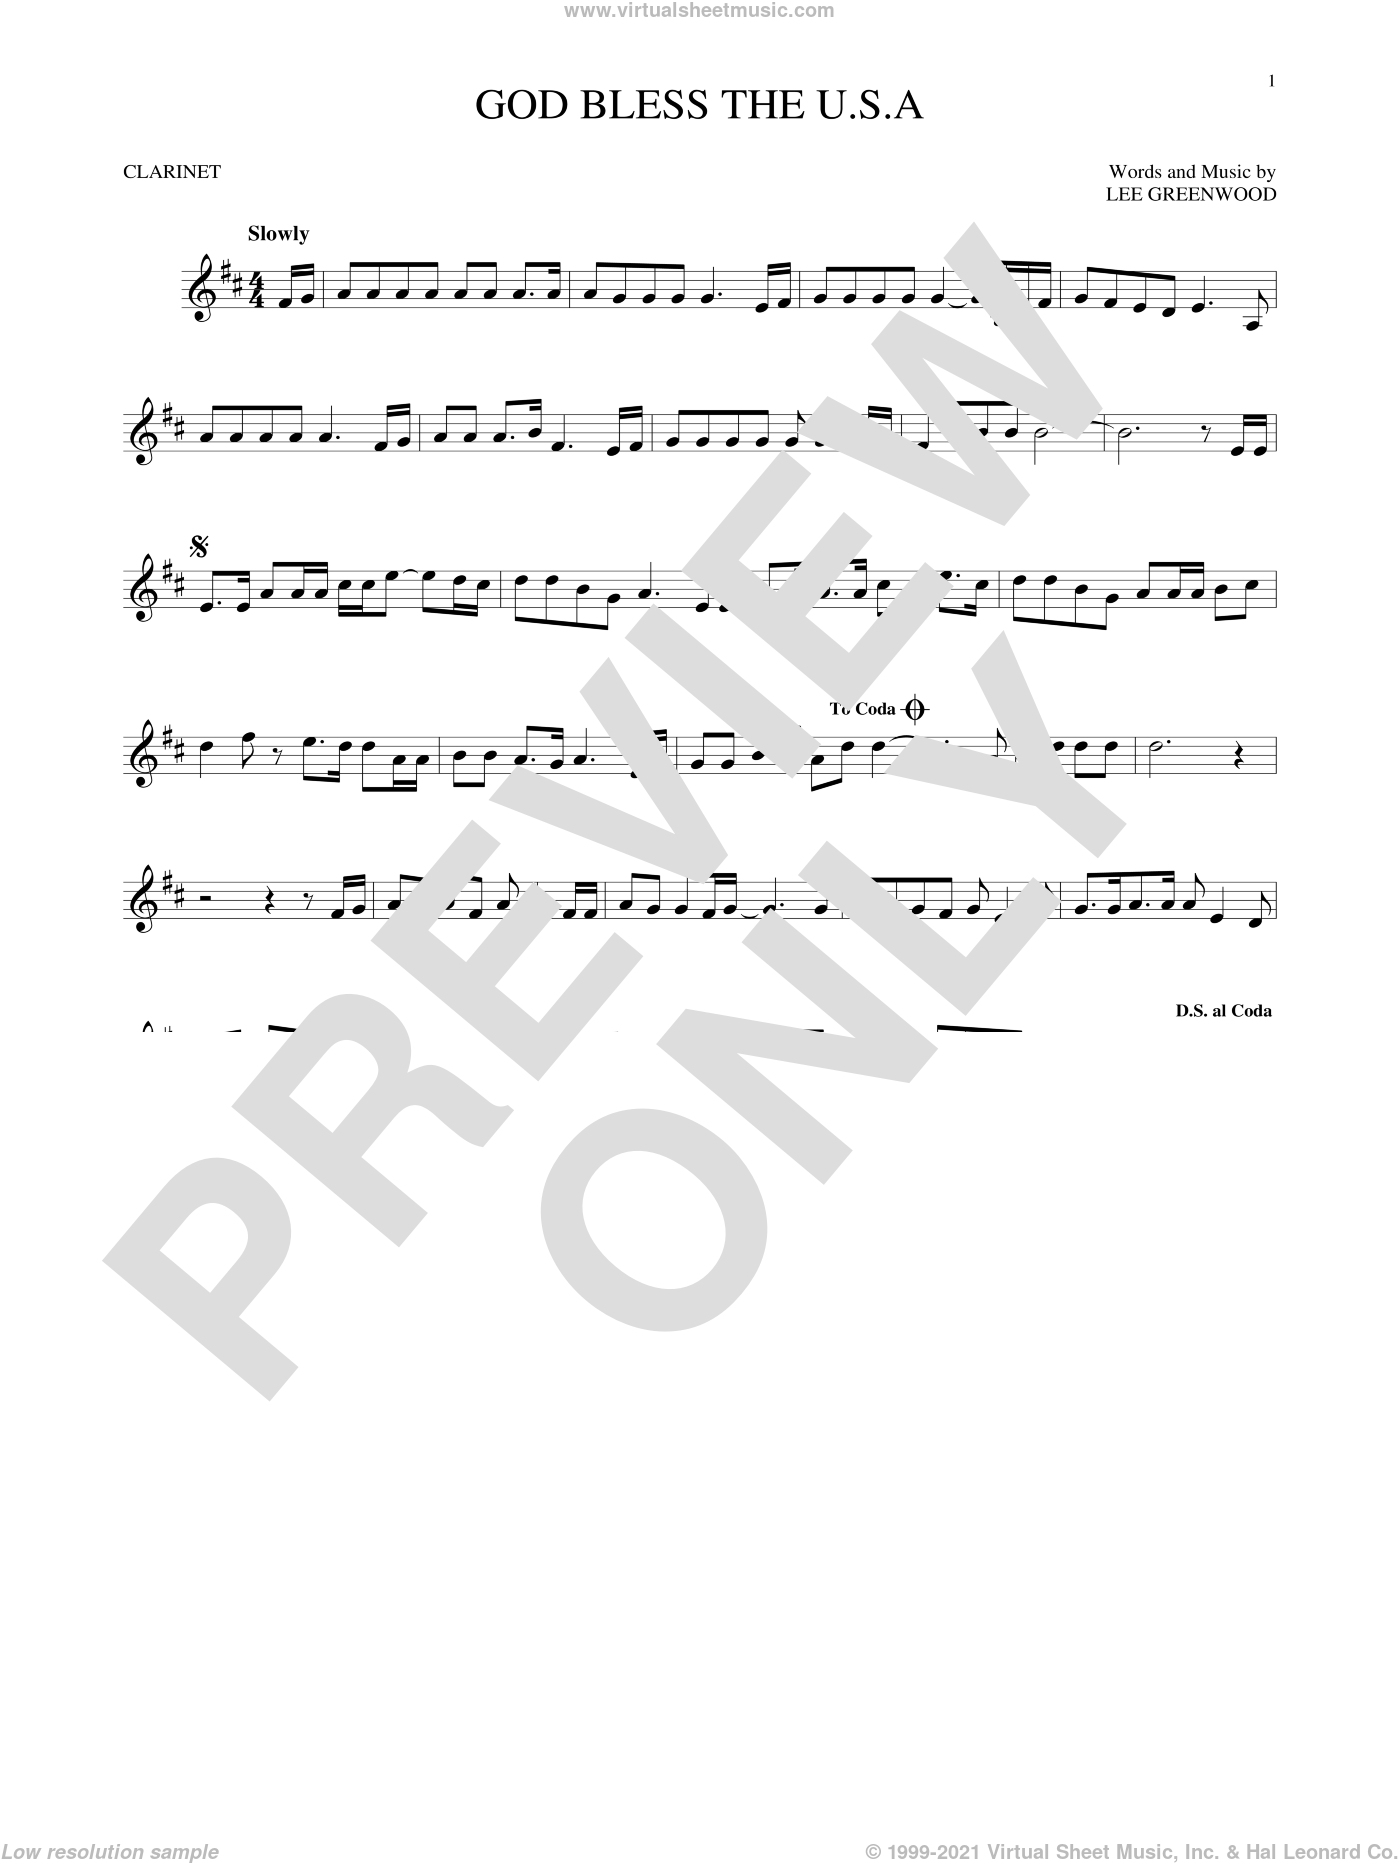 God Bless The U.S.A. sheet music for clarinet solo by Lee Greenwood. Score Image Preview.